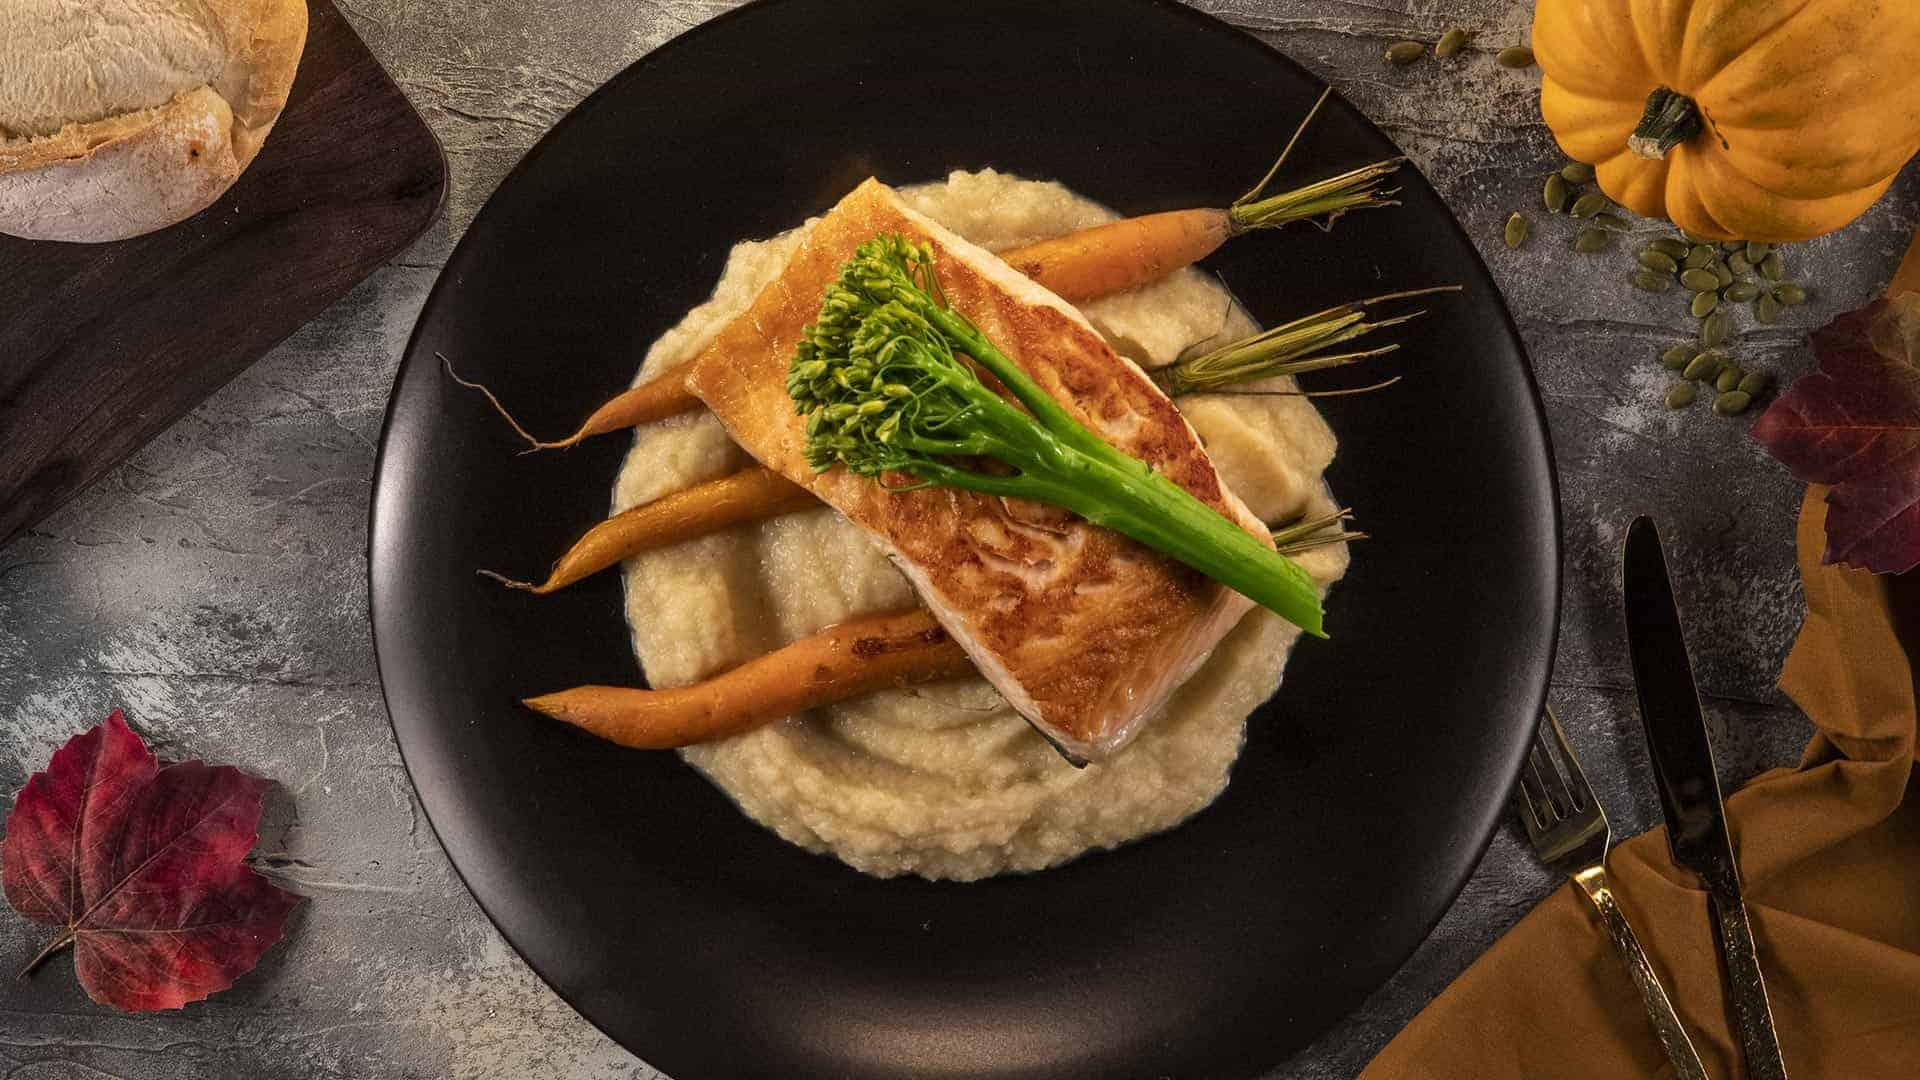 Seared Salmon with Garlic Parsnip Puree